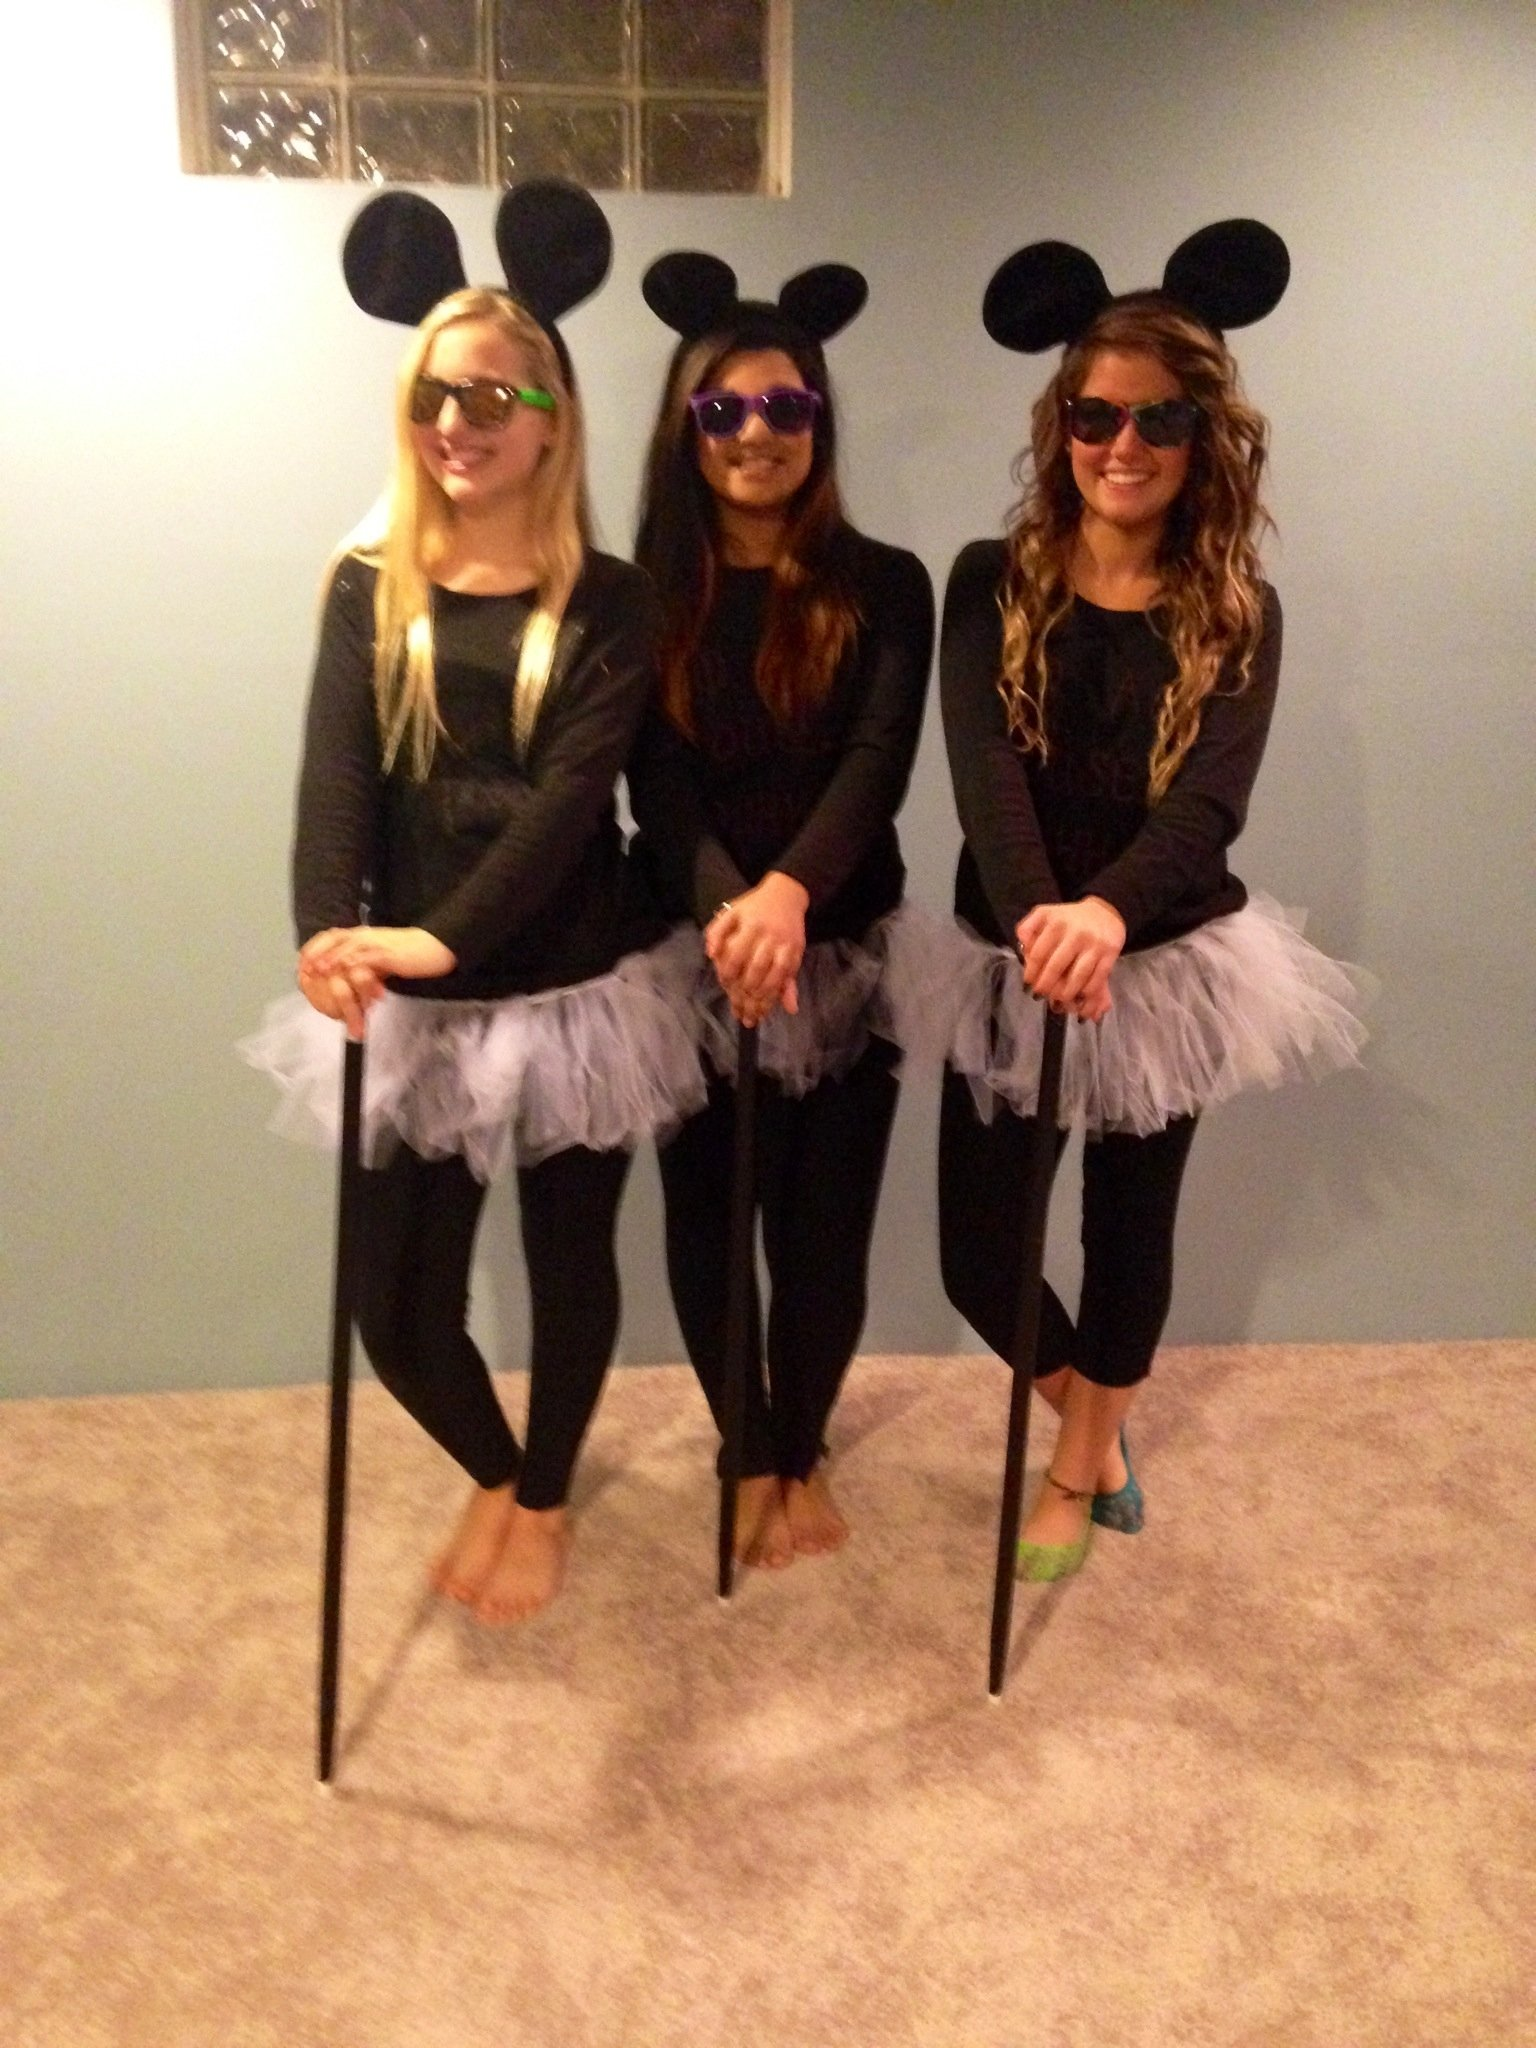 10 Fantastic Halloween Costume Ideas For Three Girls 3 blind mice diy halloween costumes for girls celebrate